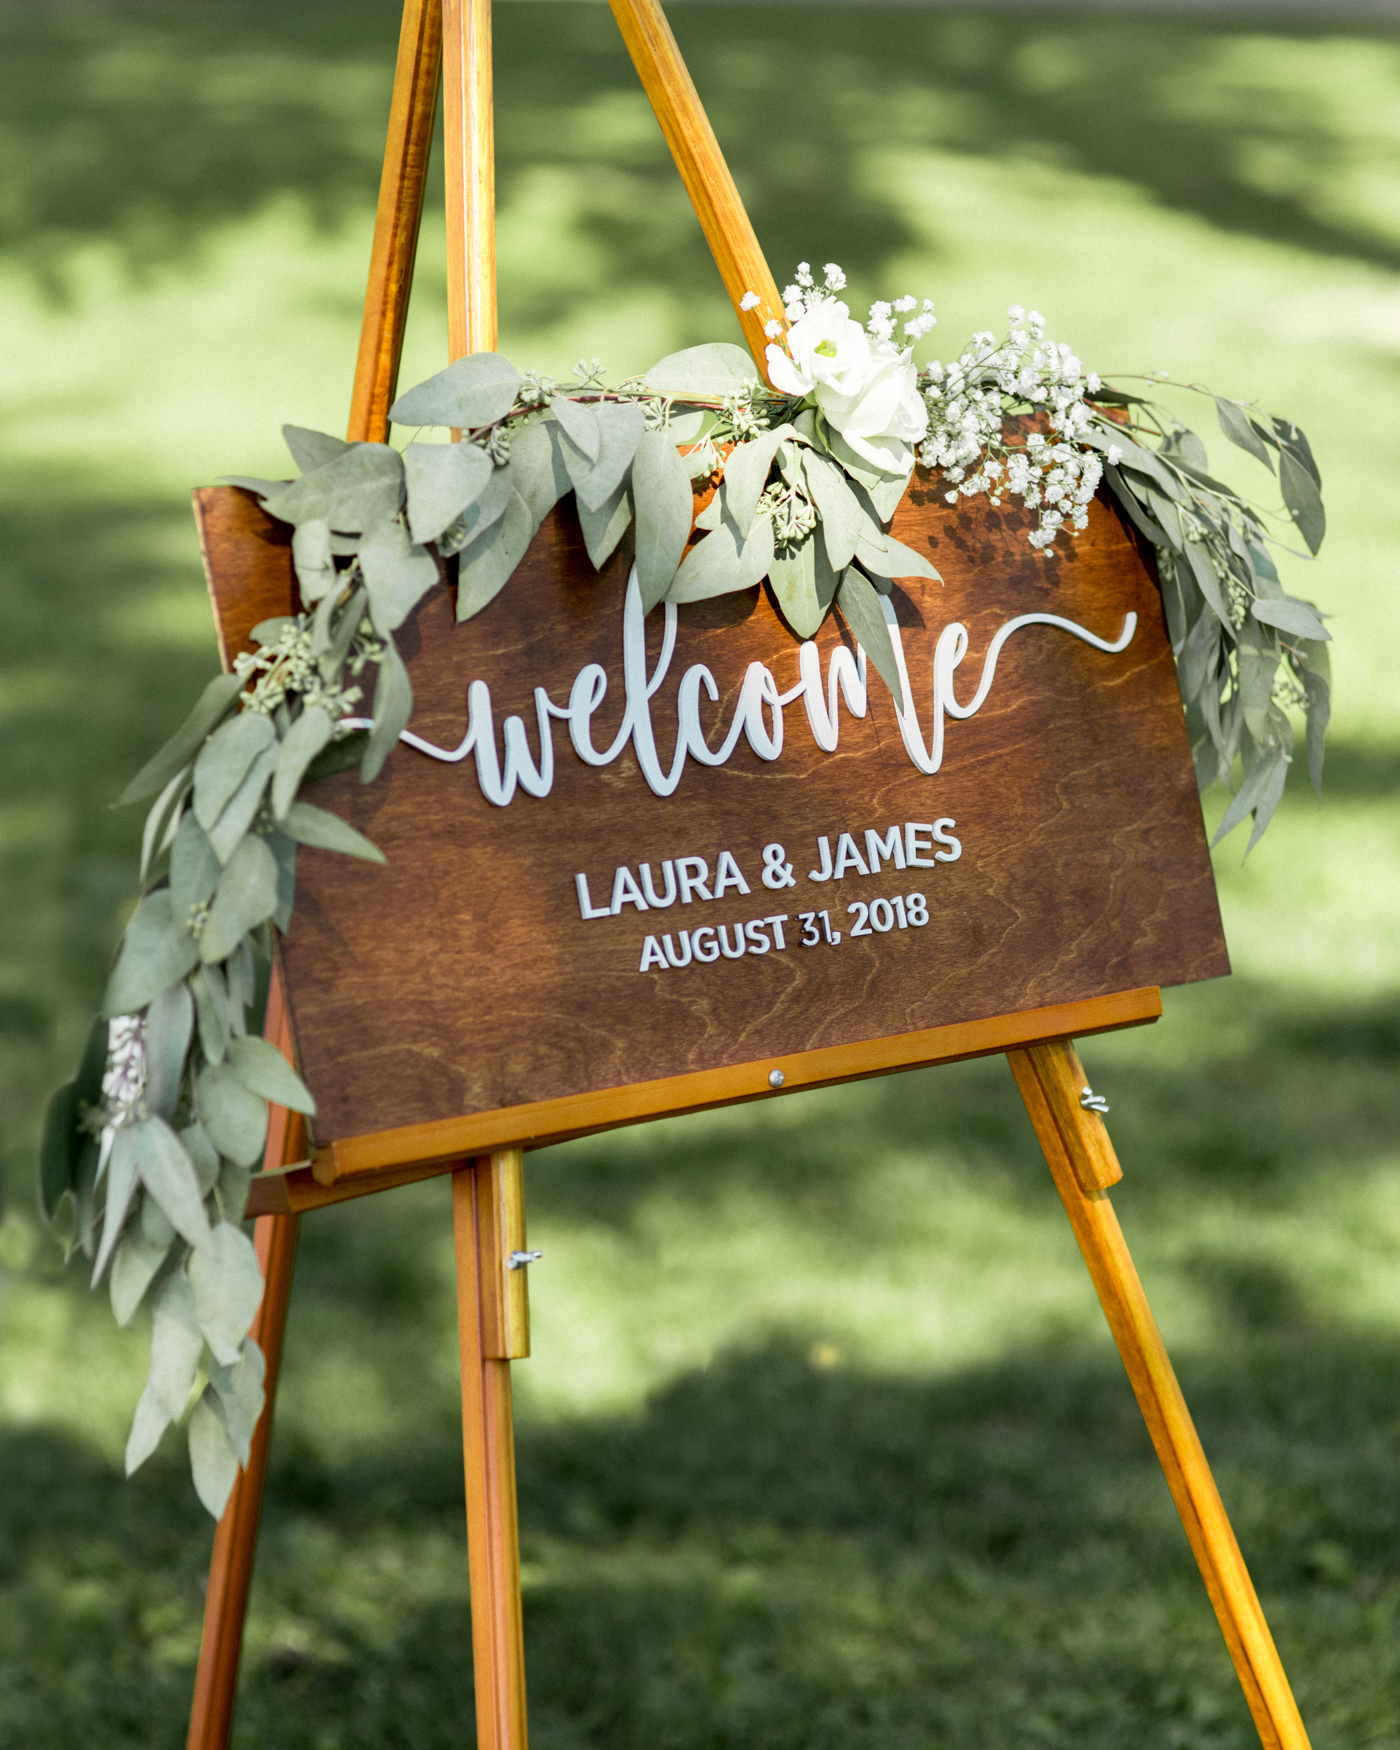 James & Laura's Barn Wedding The Farm Pearle Weddings Company Earth to Table Flamborough Hamilton Ontario Waterdown Outdoor Summer Aidan Hennebry of Hush Hush Photography & Film-32.jpg